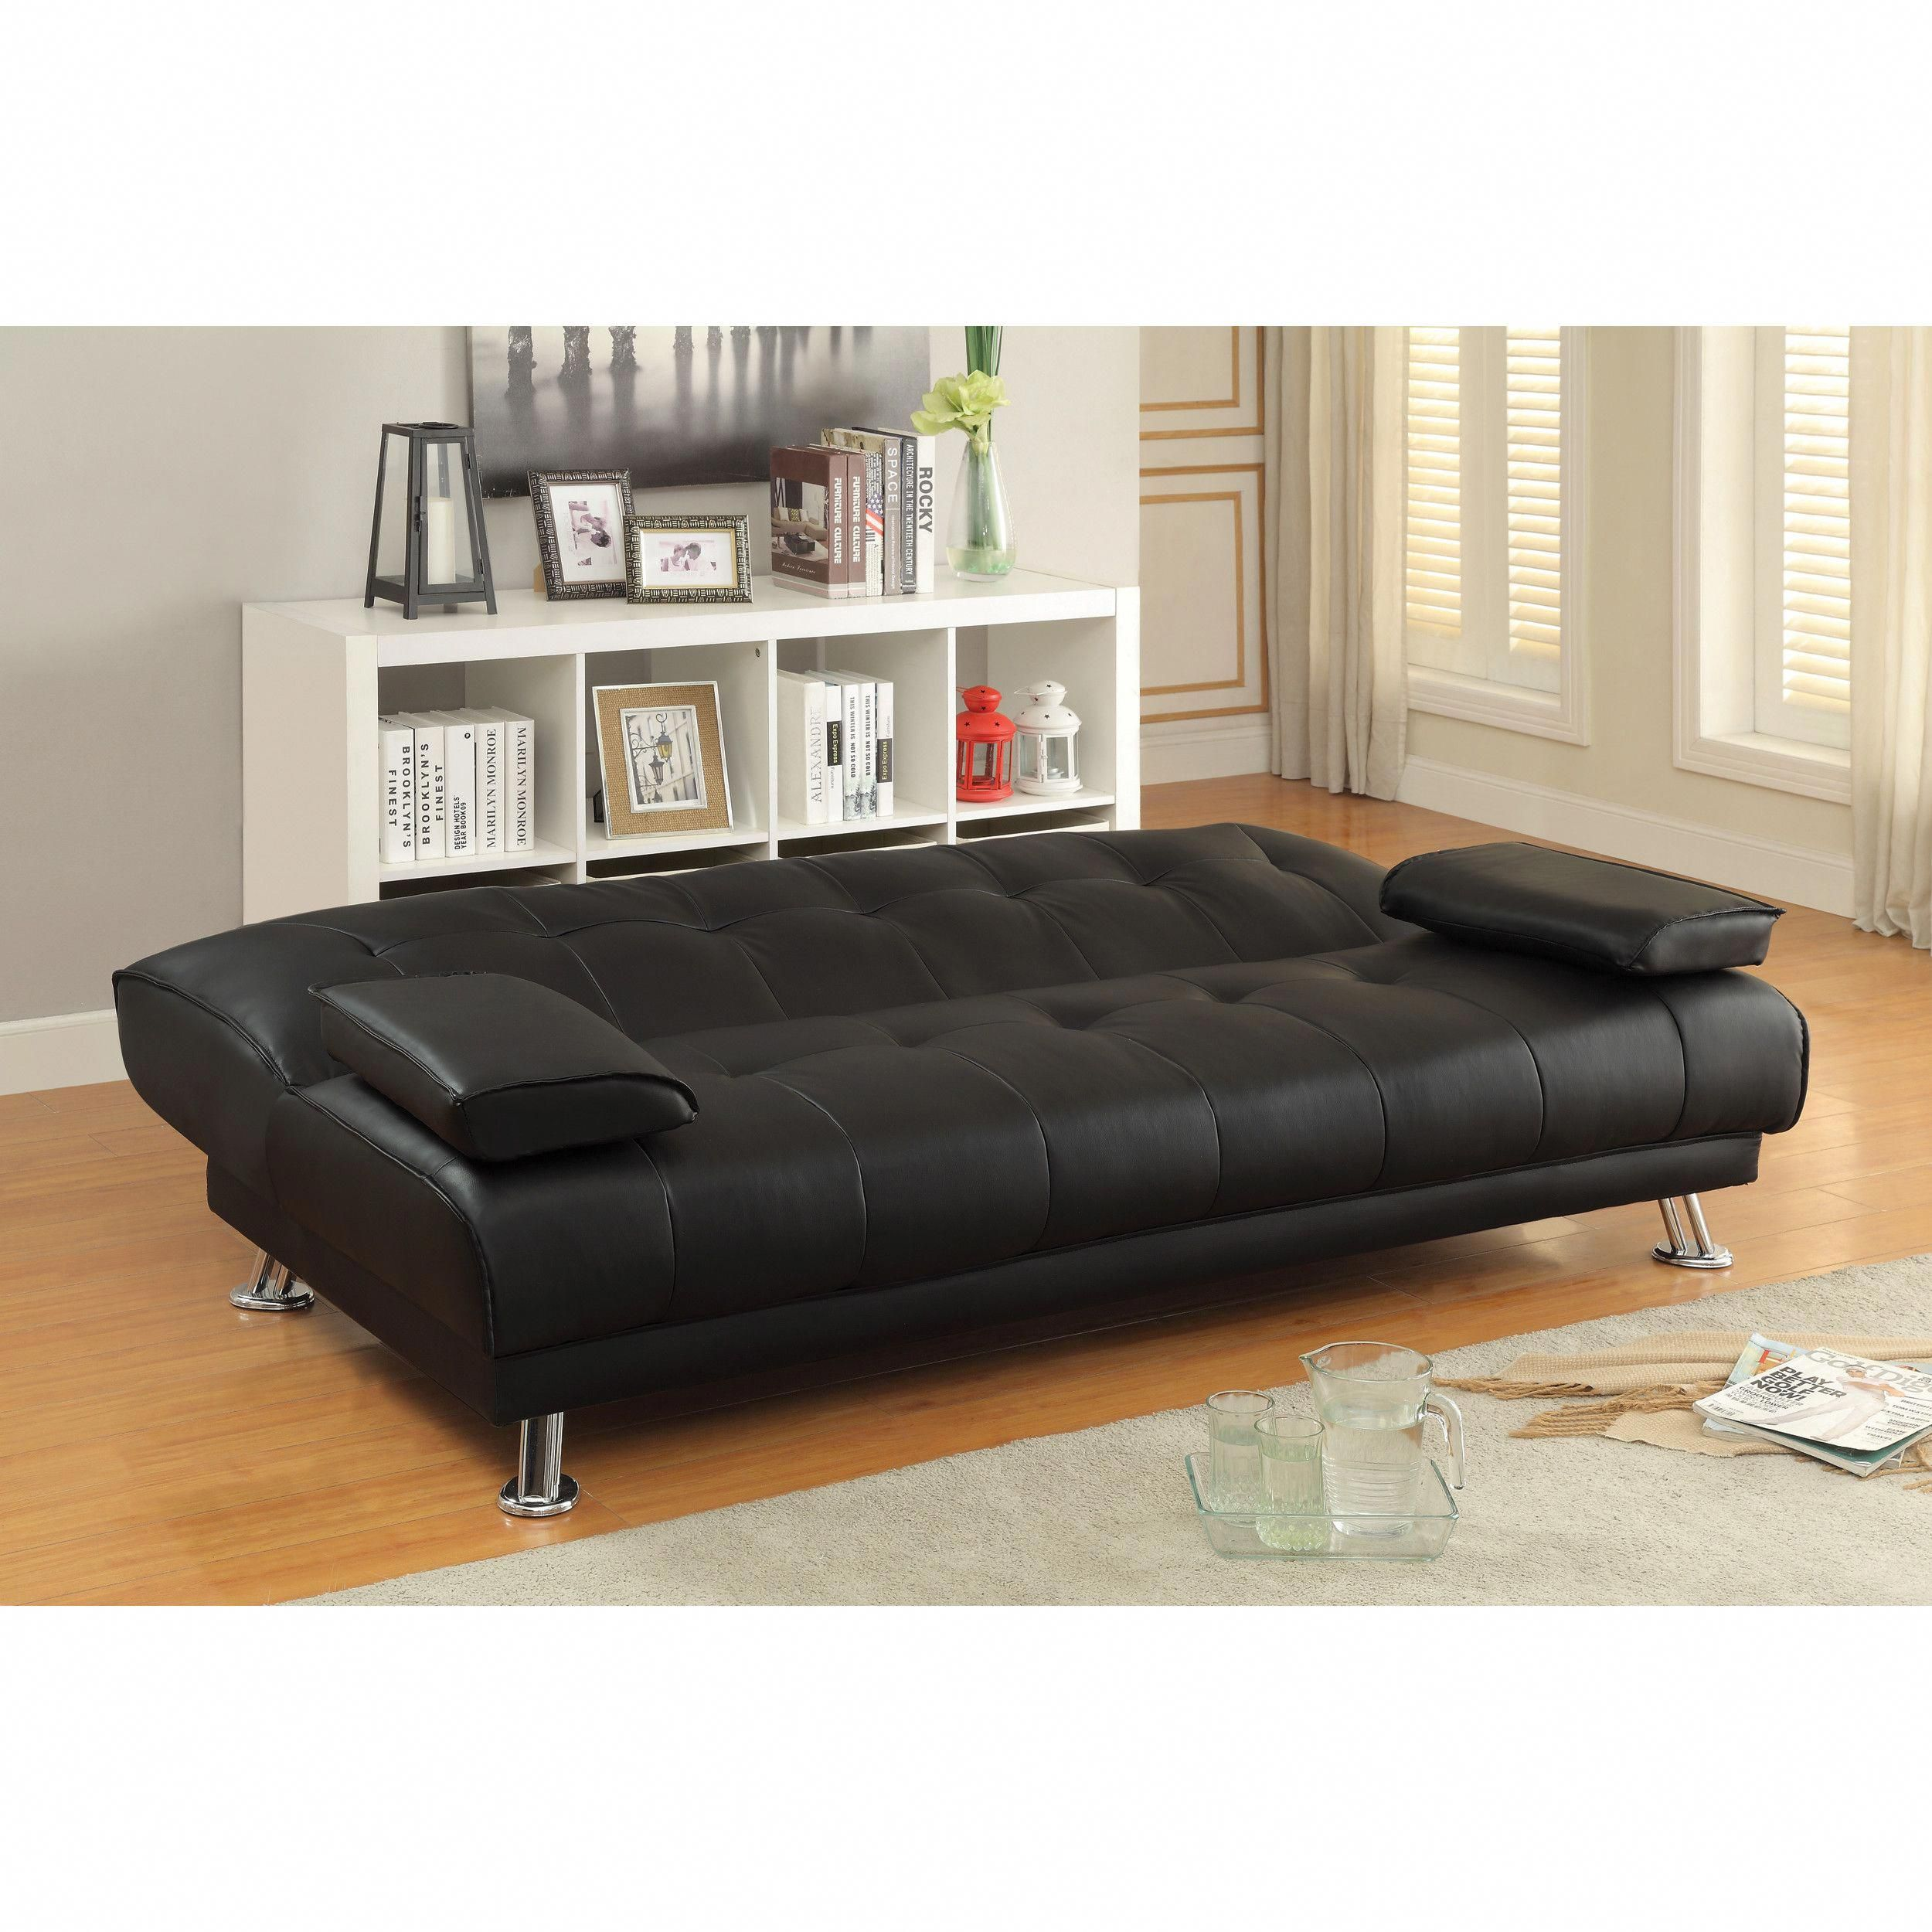 "2018 Best Black Leather Sofa Beds ""Luxury, Elegance, and ..."